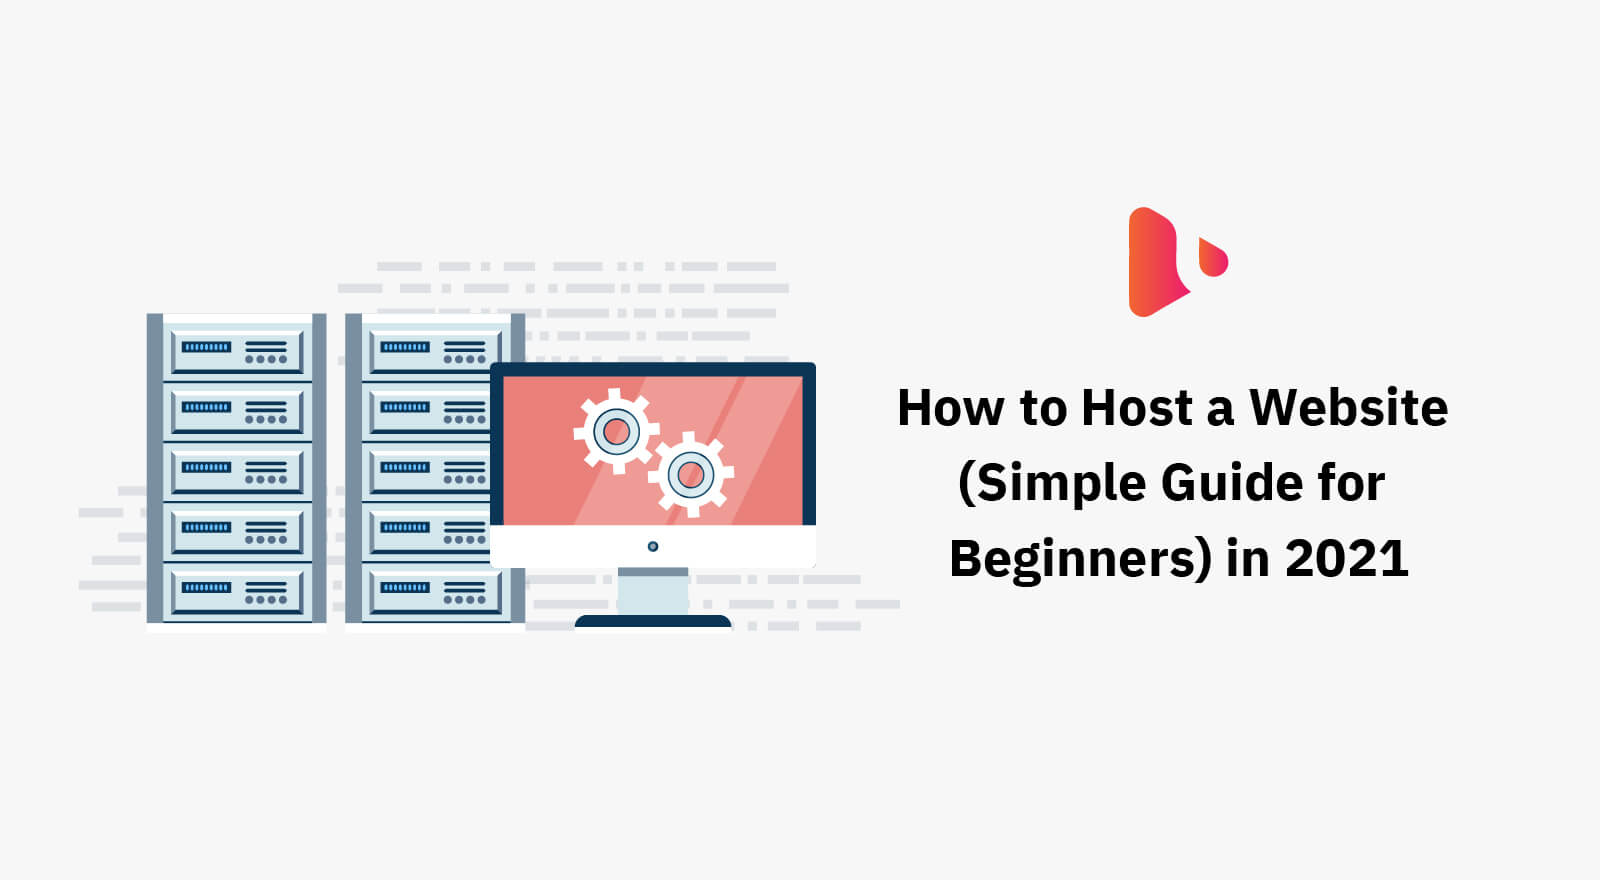 How to Host a Website (Simple Guide for Beginners) in 2021